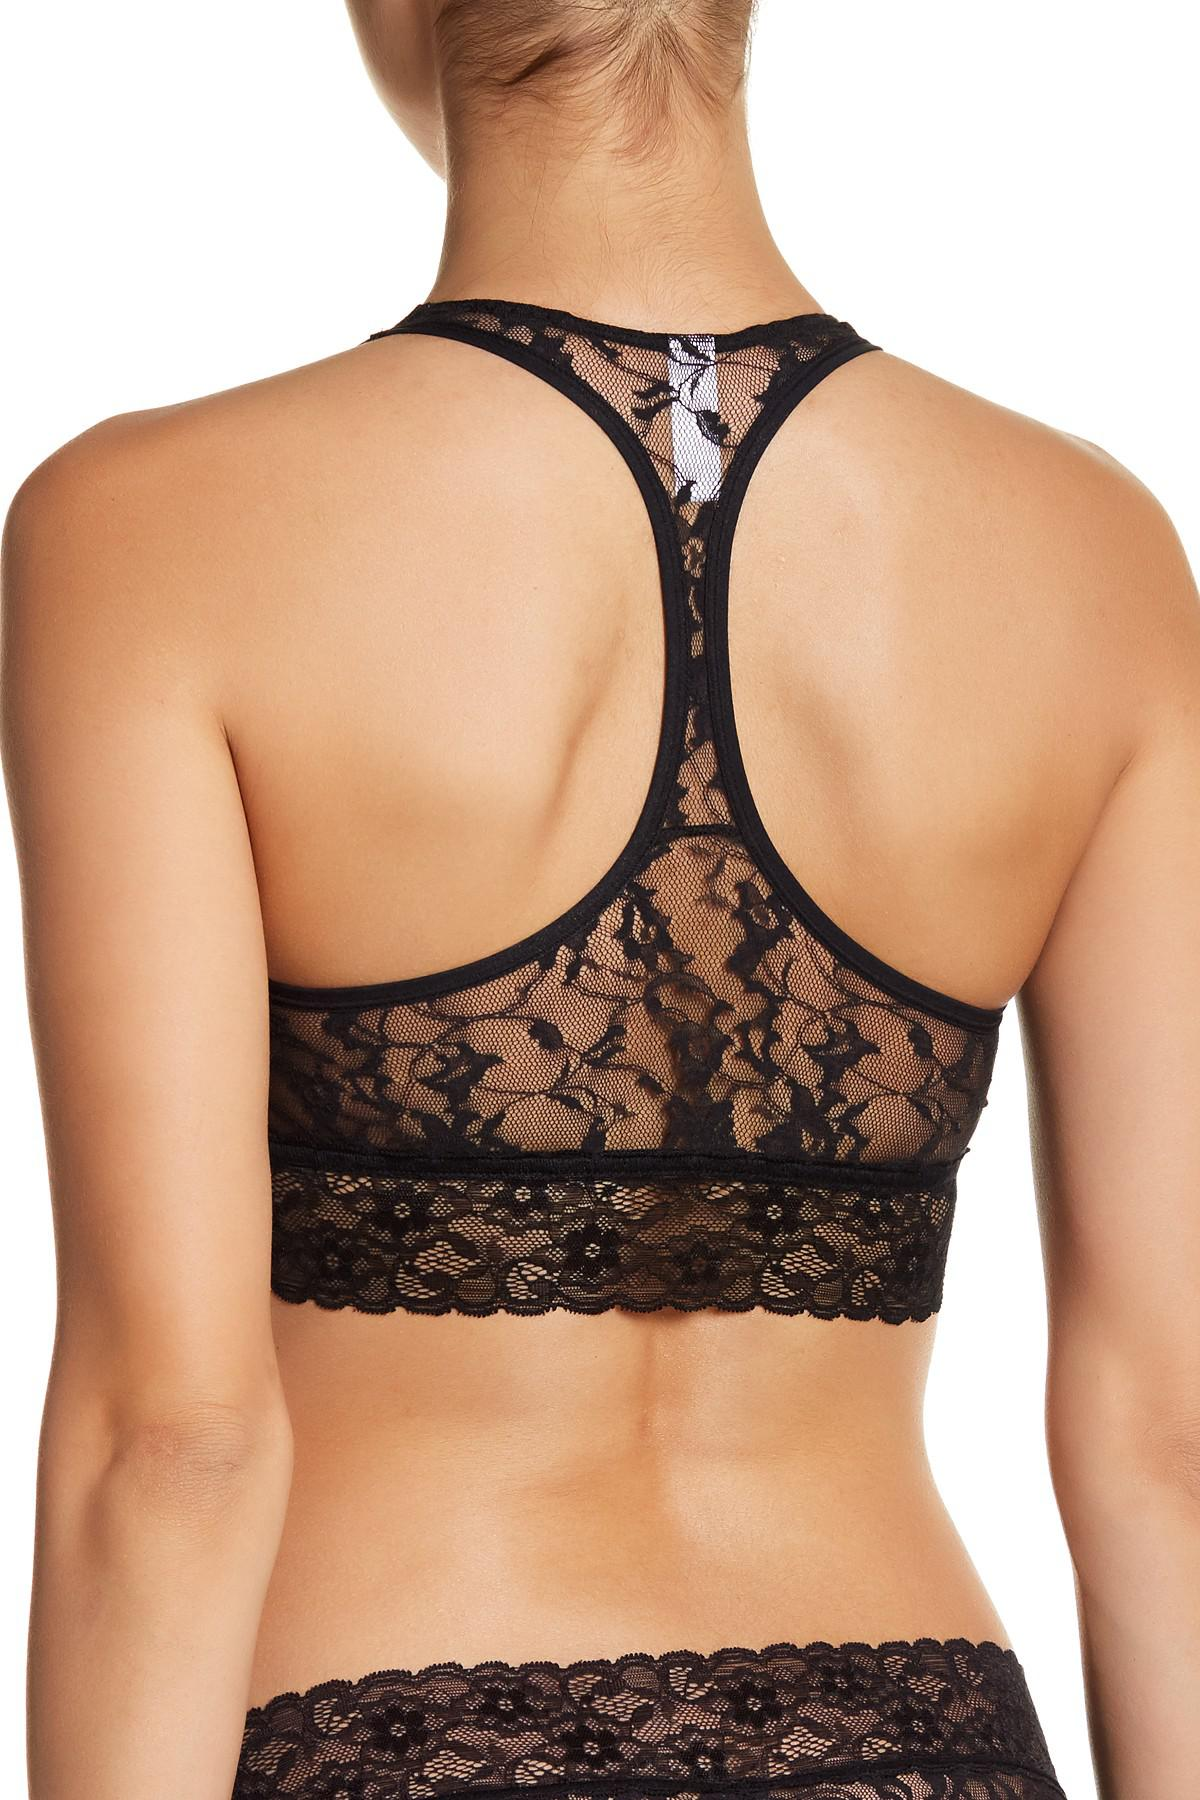 089739db7e1db DKNY - Black Signature Lace Bralette - Lyst. View fullscreen